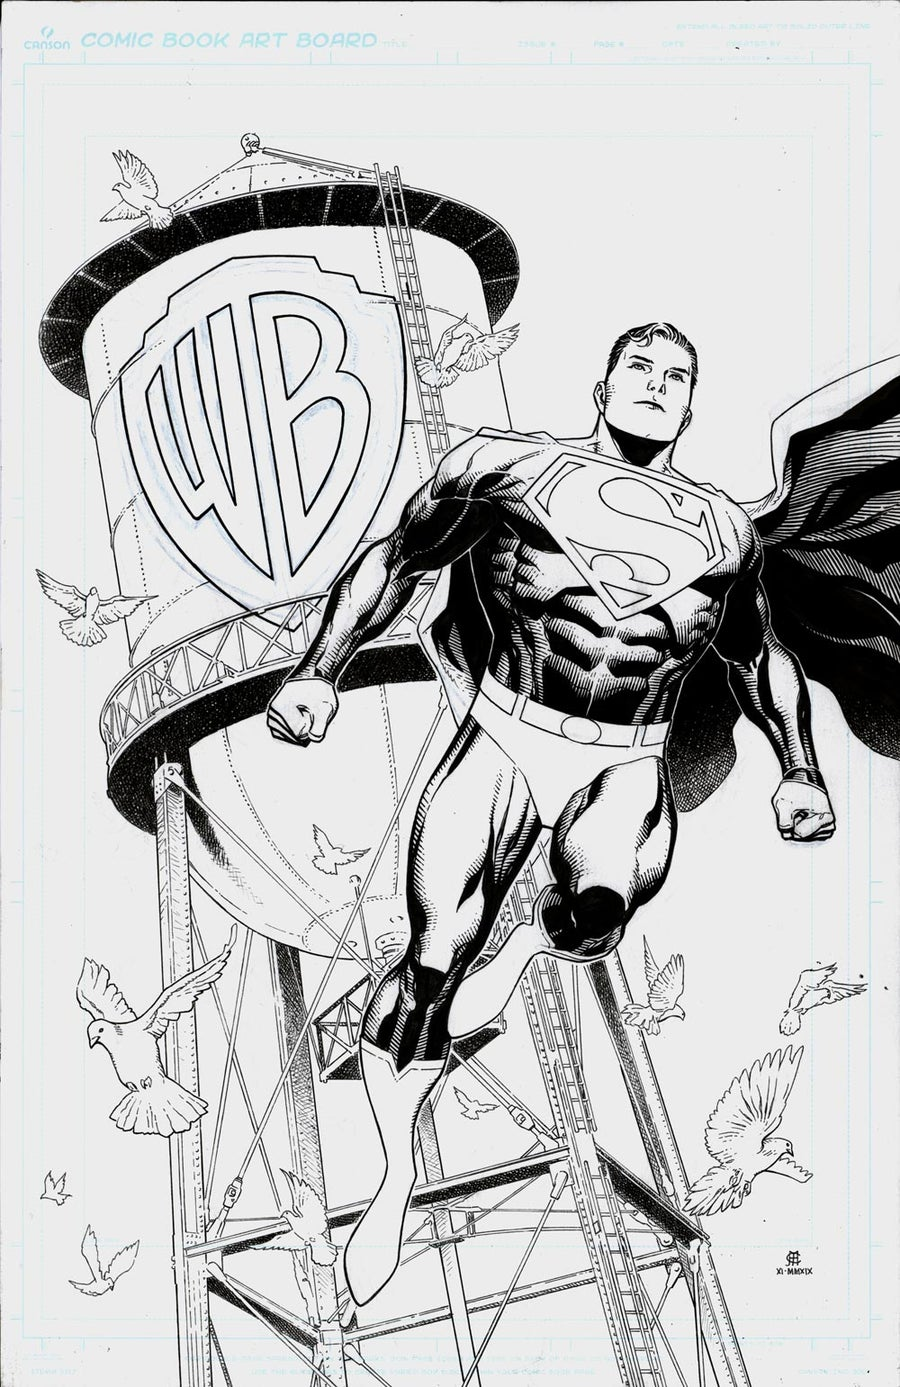 Image of SUPERMAN (WB Studios Tour Exclusive) TPB Cover